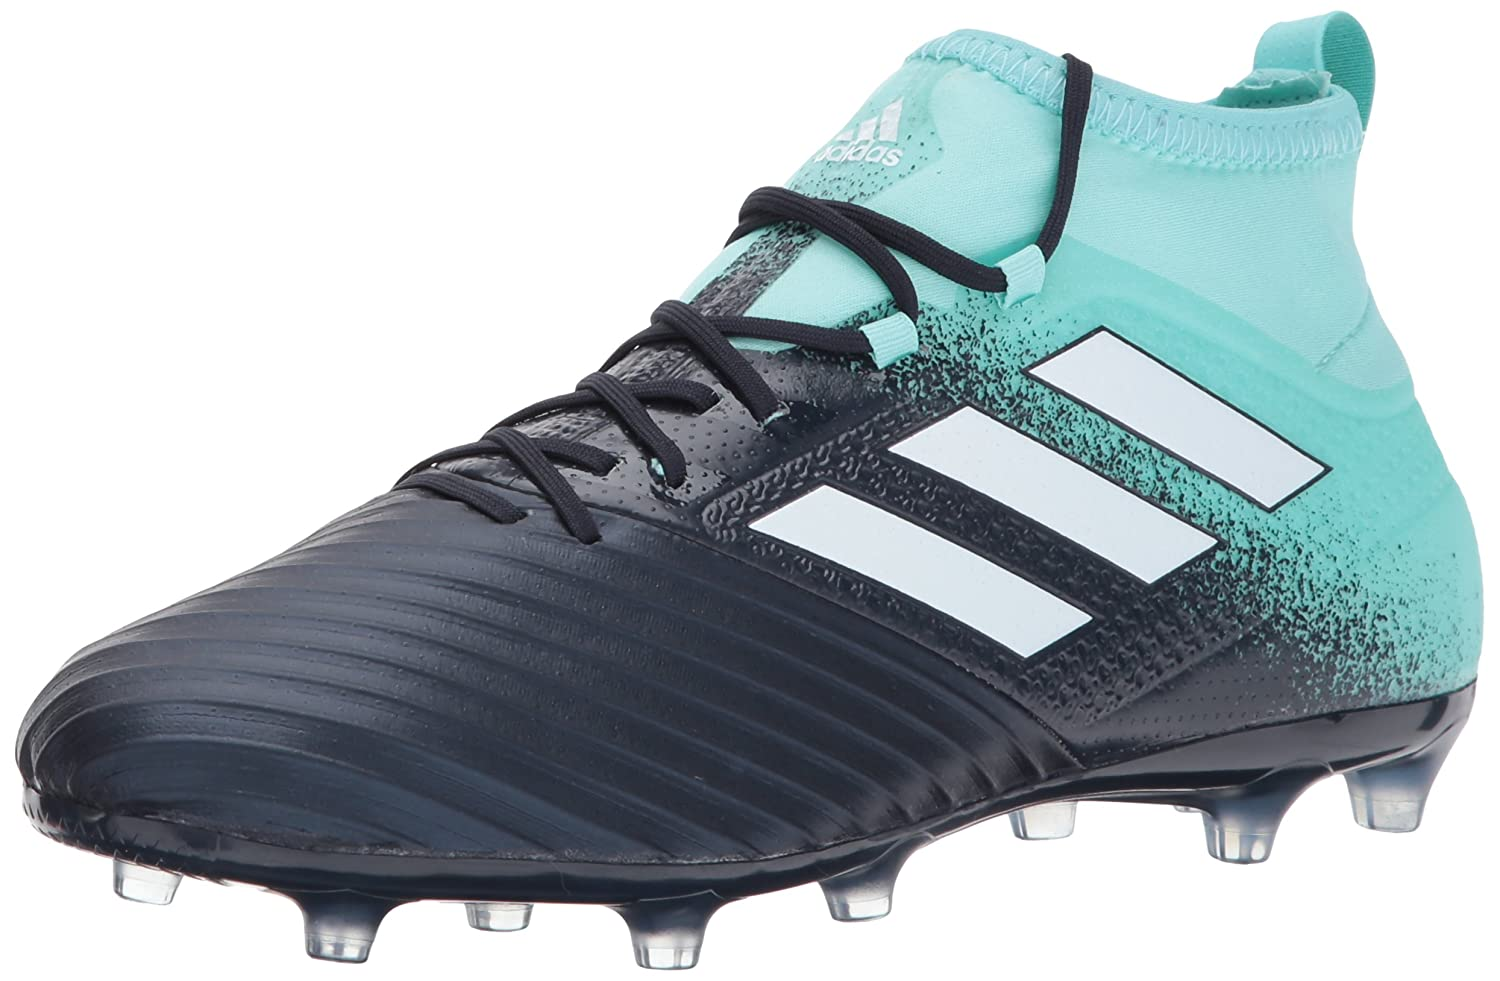 Adidas Originals Men's Ace 17.2 Firm Ground Cleats Soccer Schuhe, Energy Aqua Weiß Legend Ink, (10.5 M US)